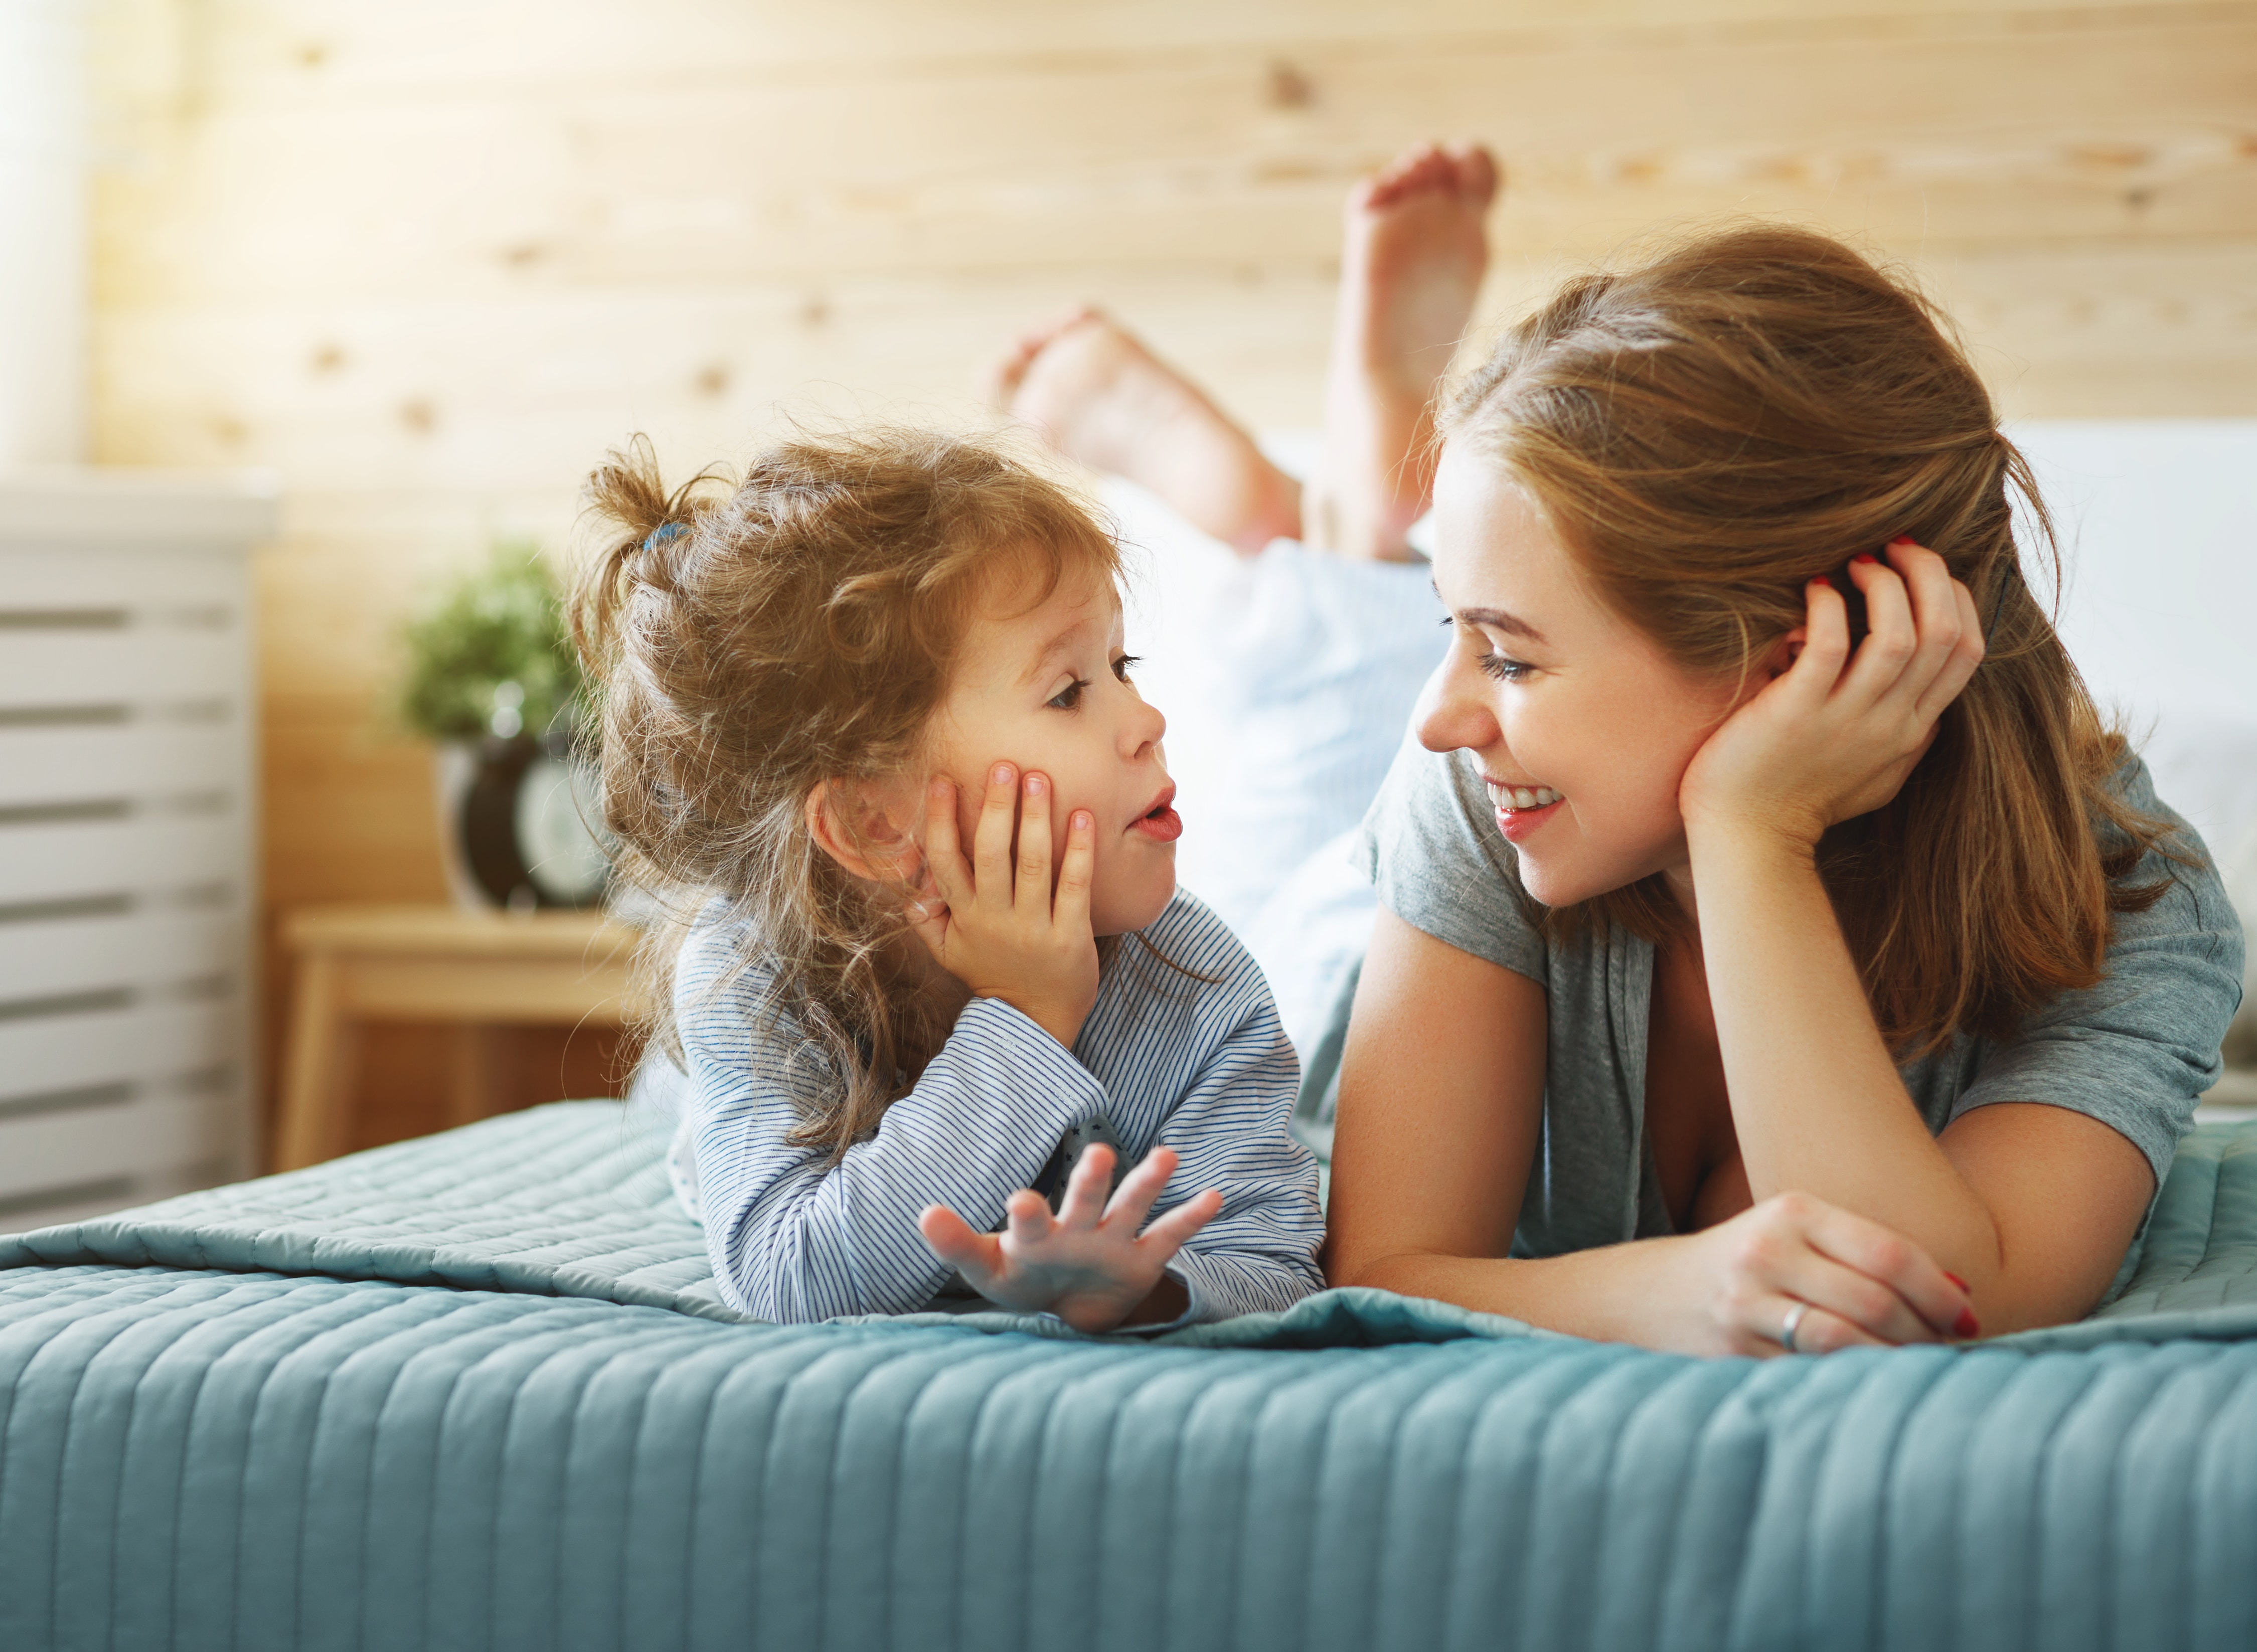 mum and young daughter talking and smiling on bed, parenting, balance